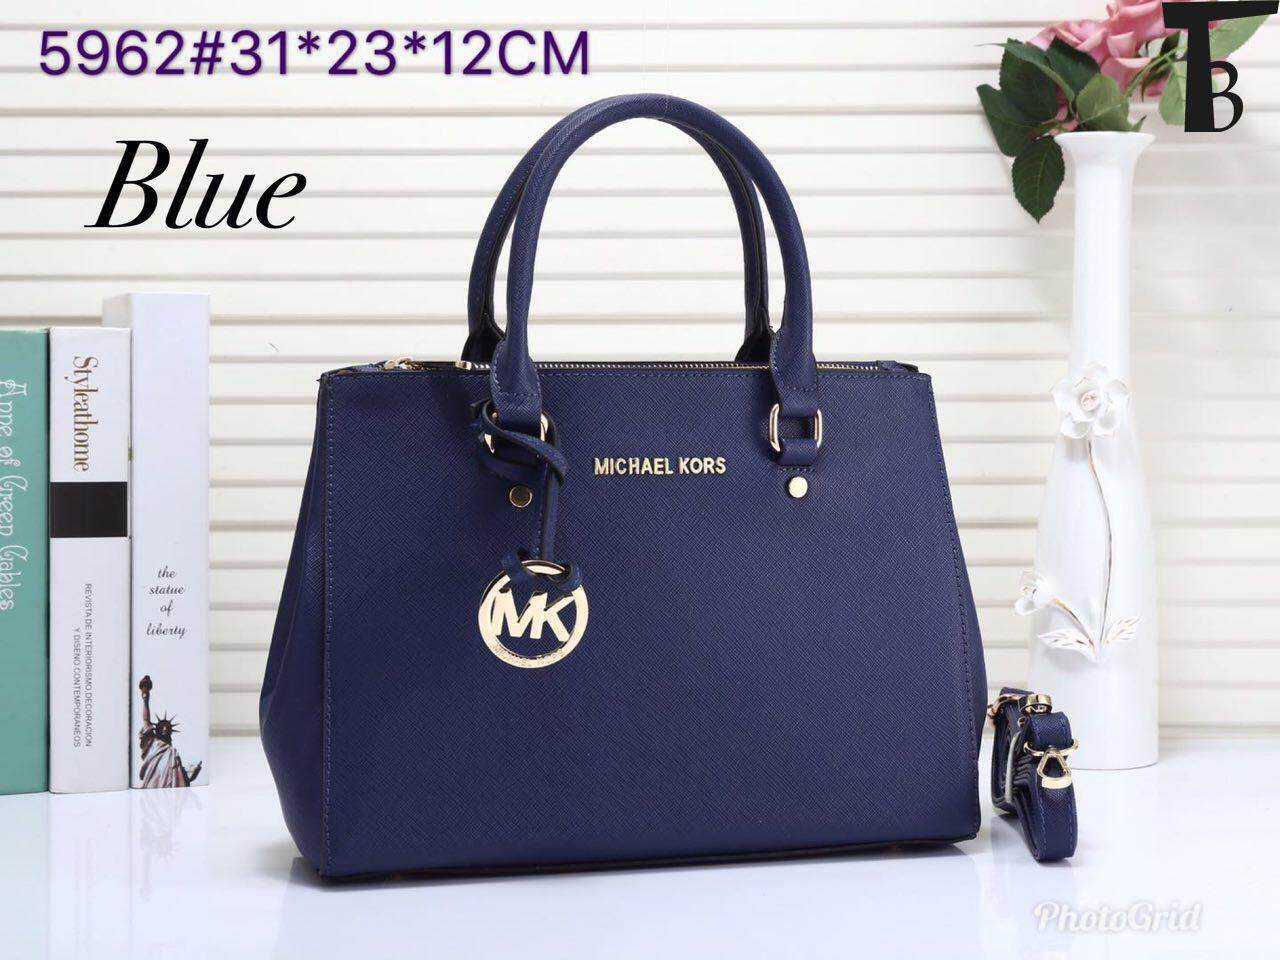 25d9e7aa27 11.11 Premium Quality MK Saffiano Bag Fashion Michael Kors Tote Sling Bag